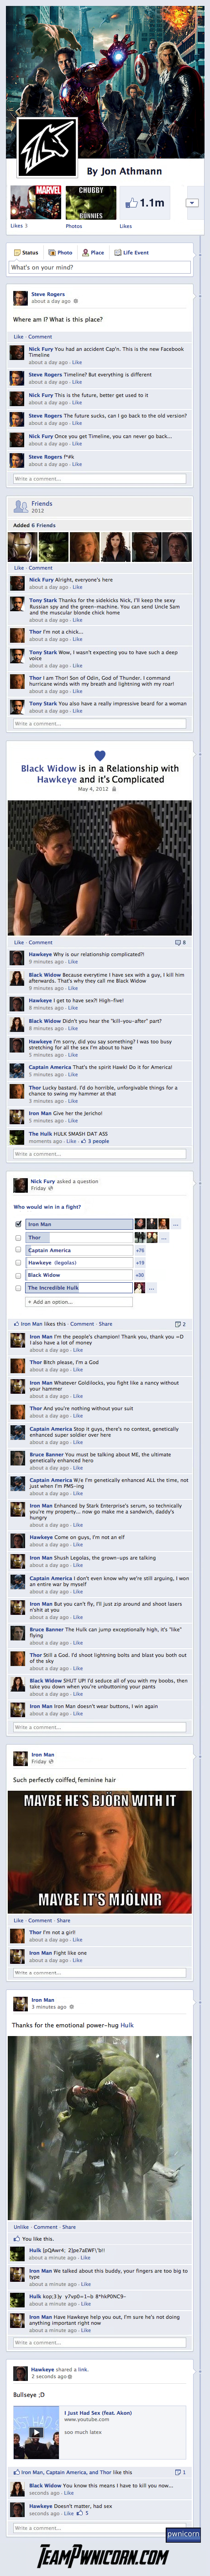 if the Avengers was told on facebook